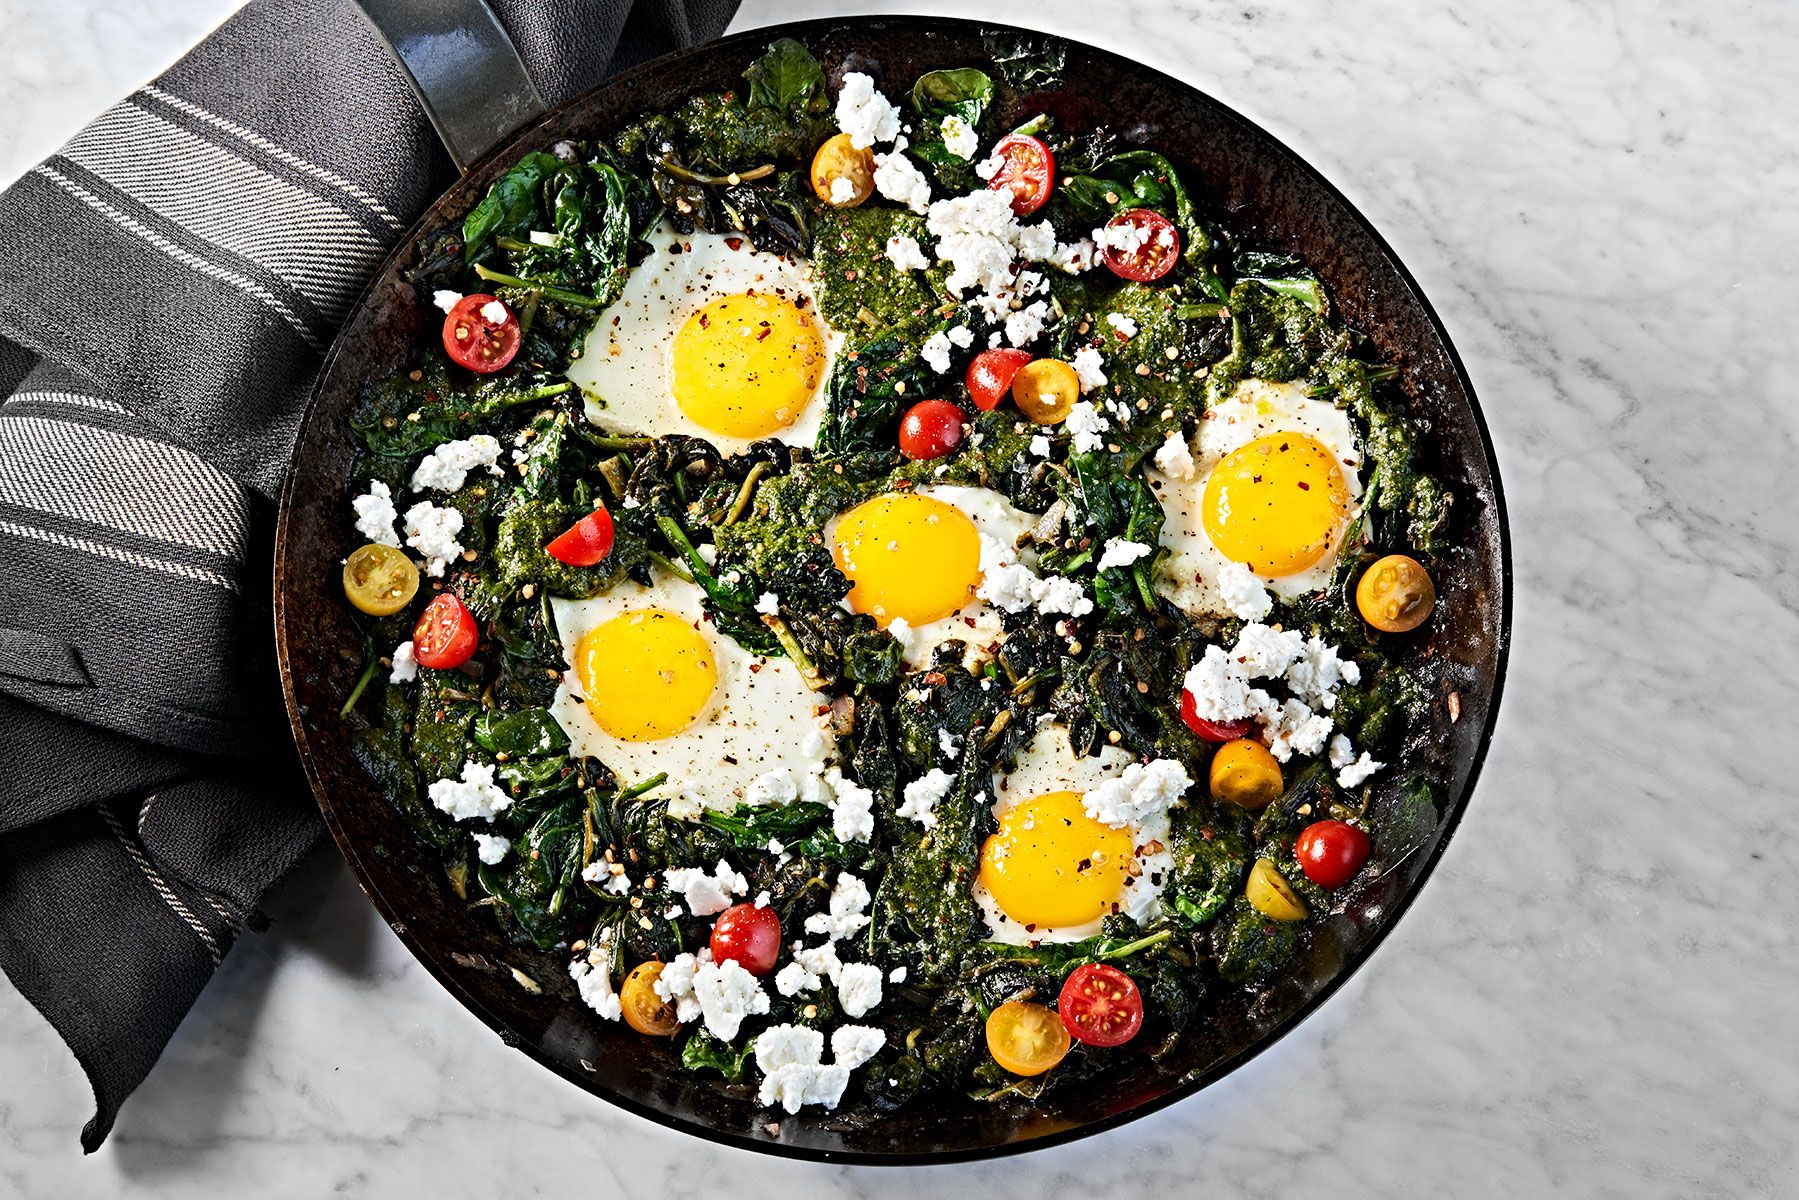 Green spinach and kale shakshuka with sunny-side up eggs and feta.